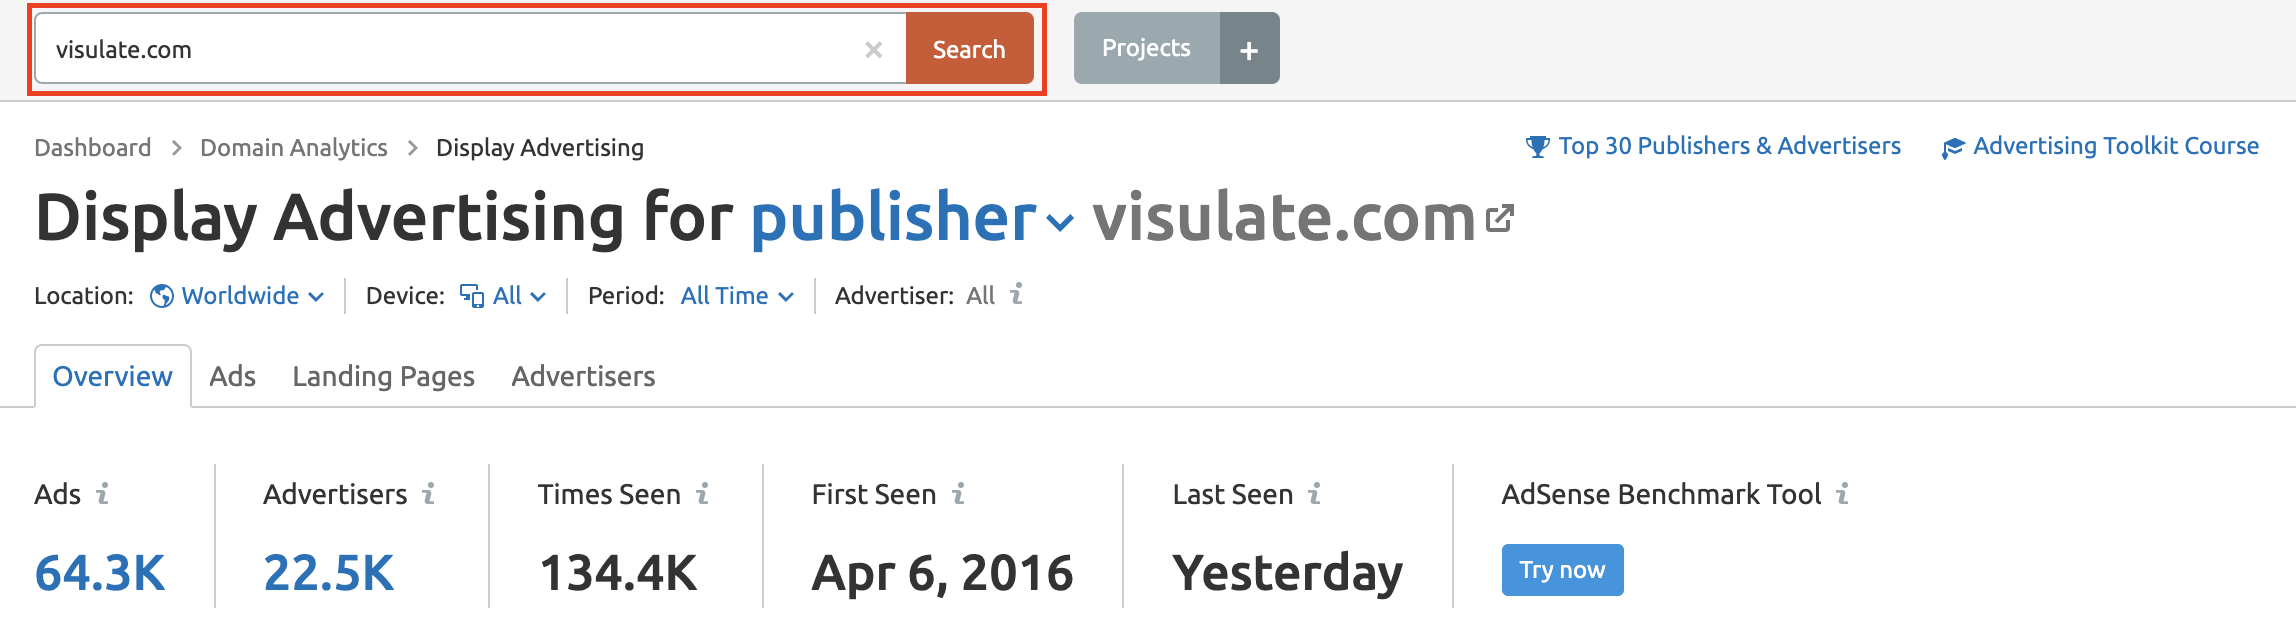 Building a Media Buying Strategy with Semrush image 2